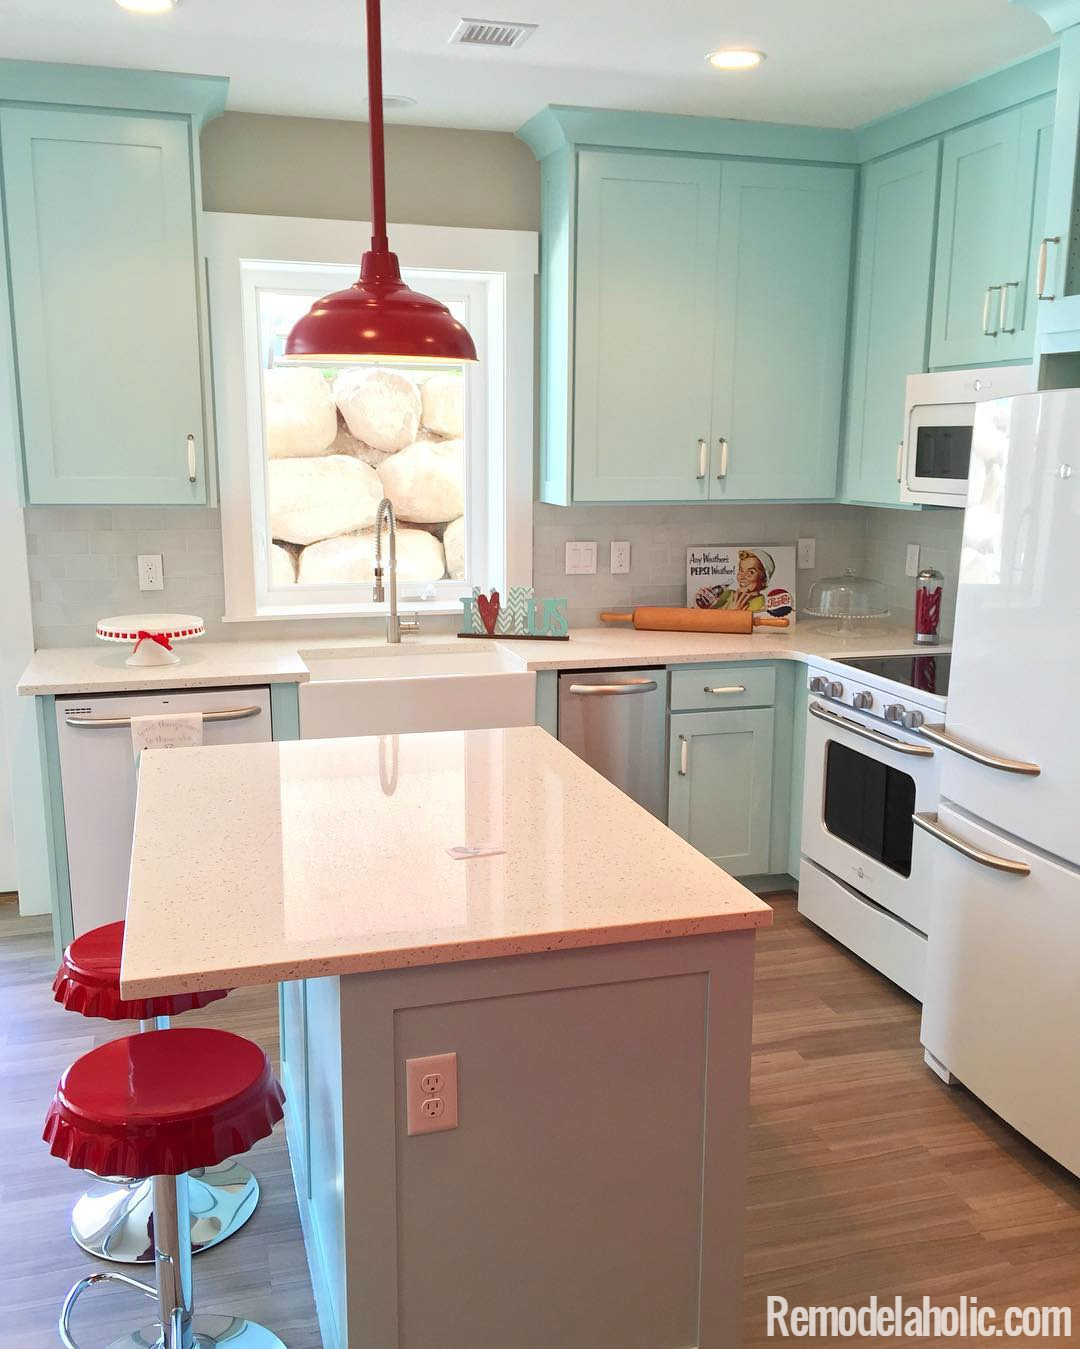 Super cute retro kitchen with light blue cabinets and red fixtures love it